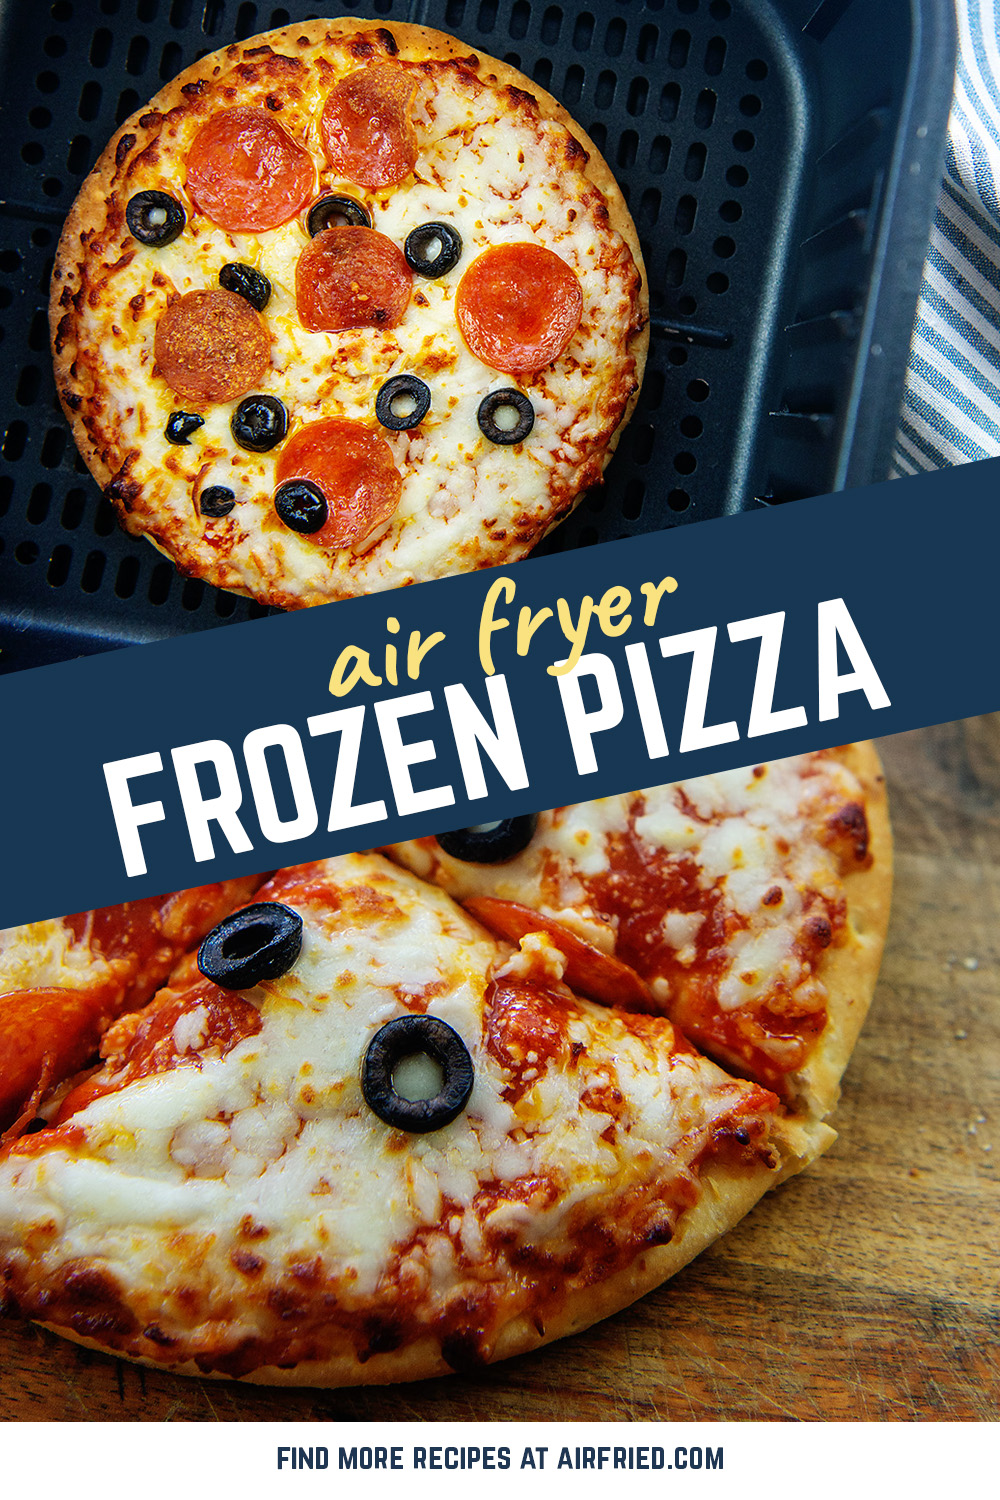 Air fryer frozen pizza is fast, convenient, and easy to personalize with your favorite toppings!